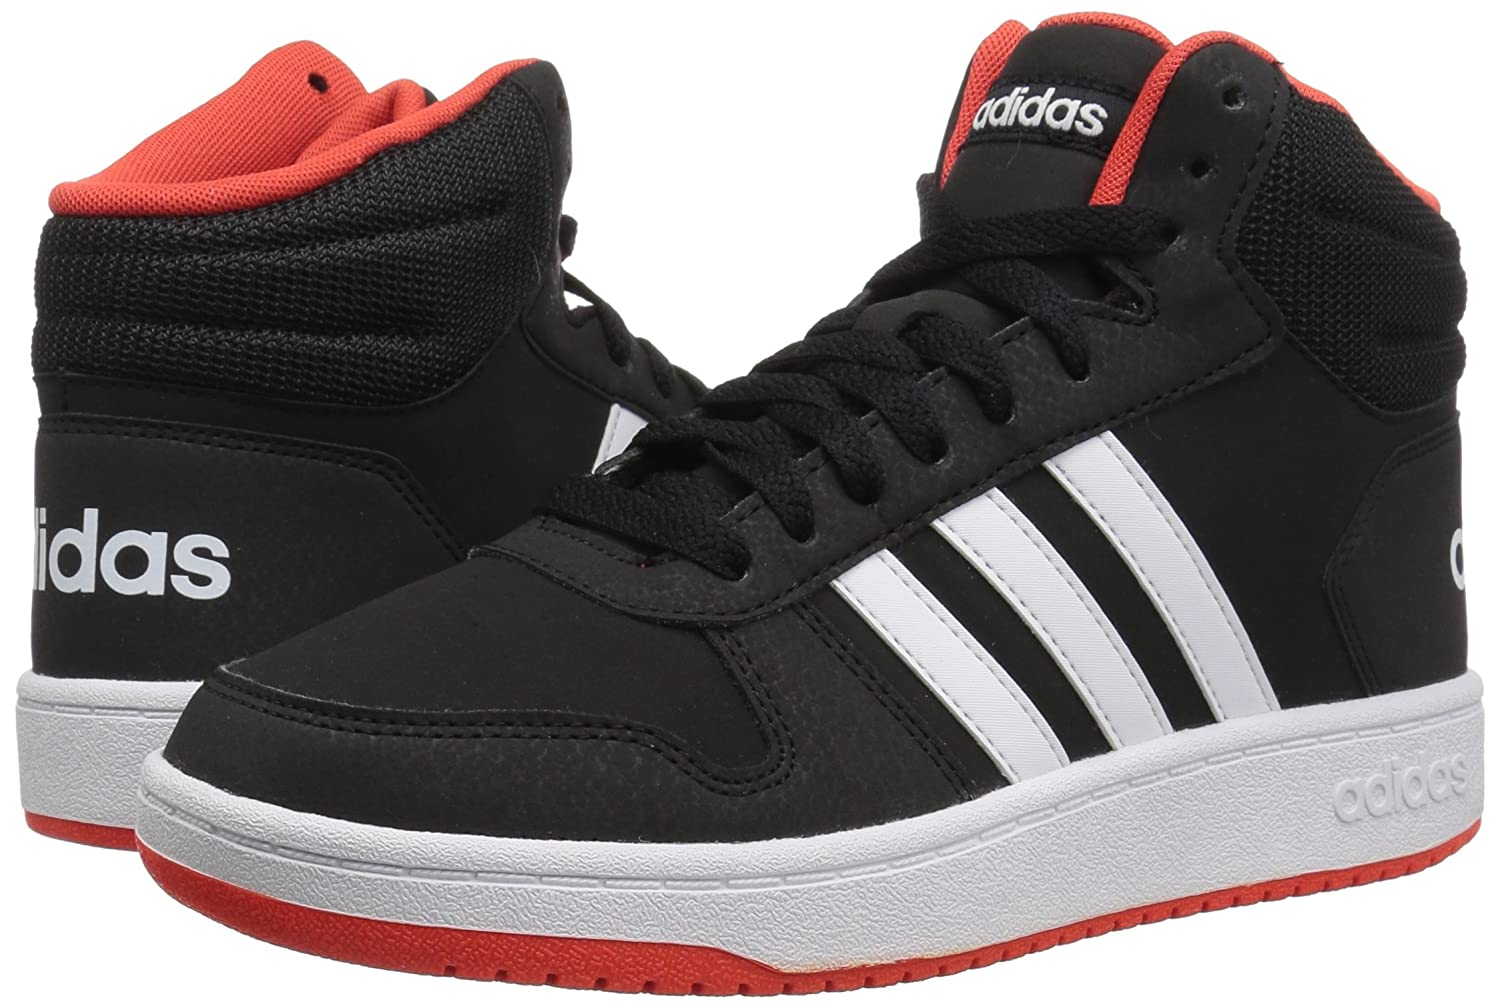 adidas Kids Hoops 2.0 Basketball Shoe